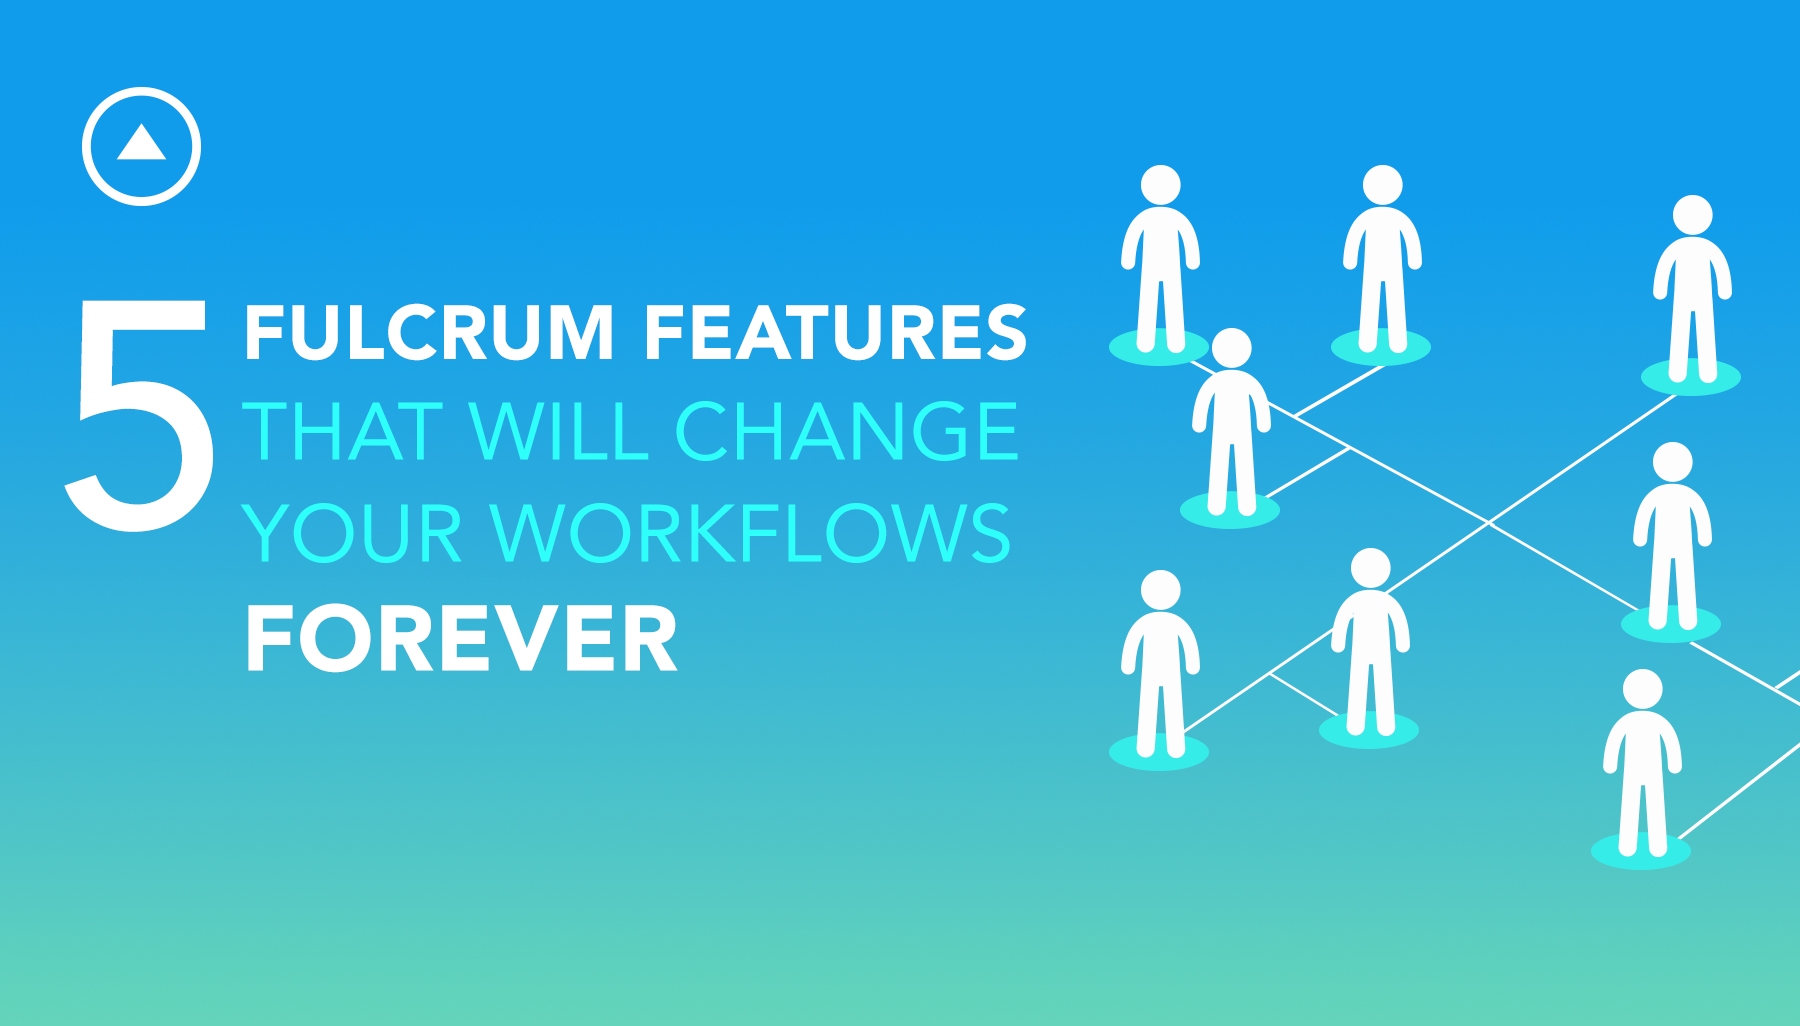 5 Fulcrum Features That Will Change Your Workflows Forever